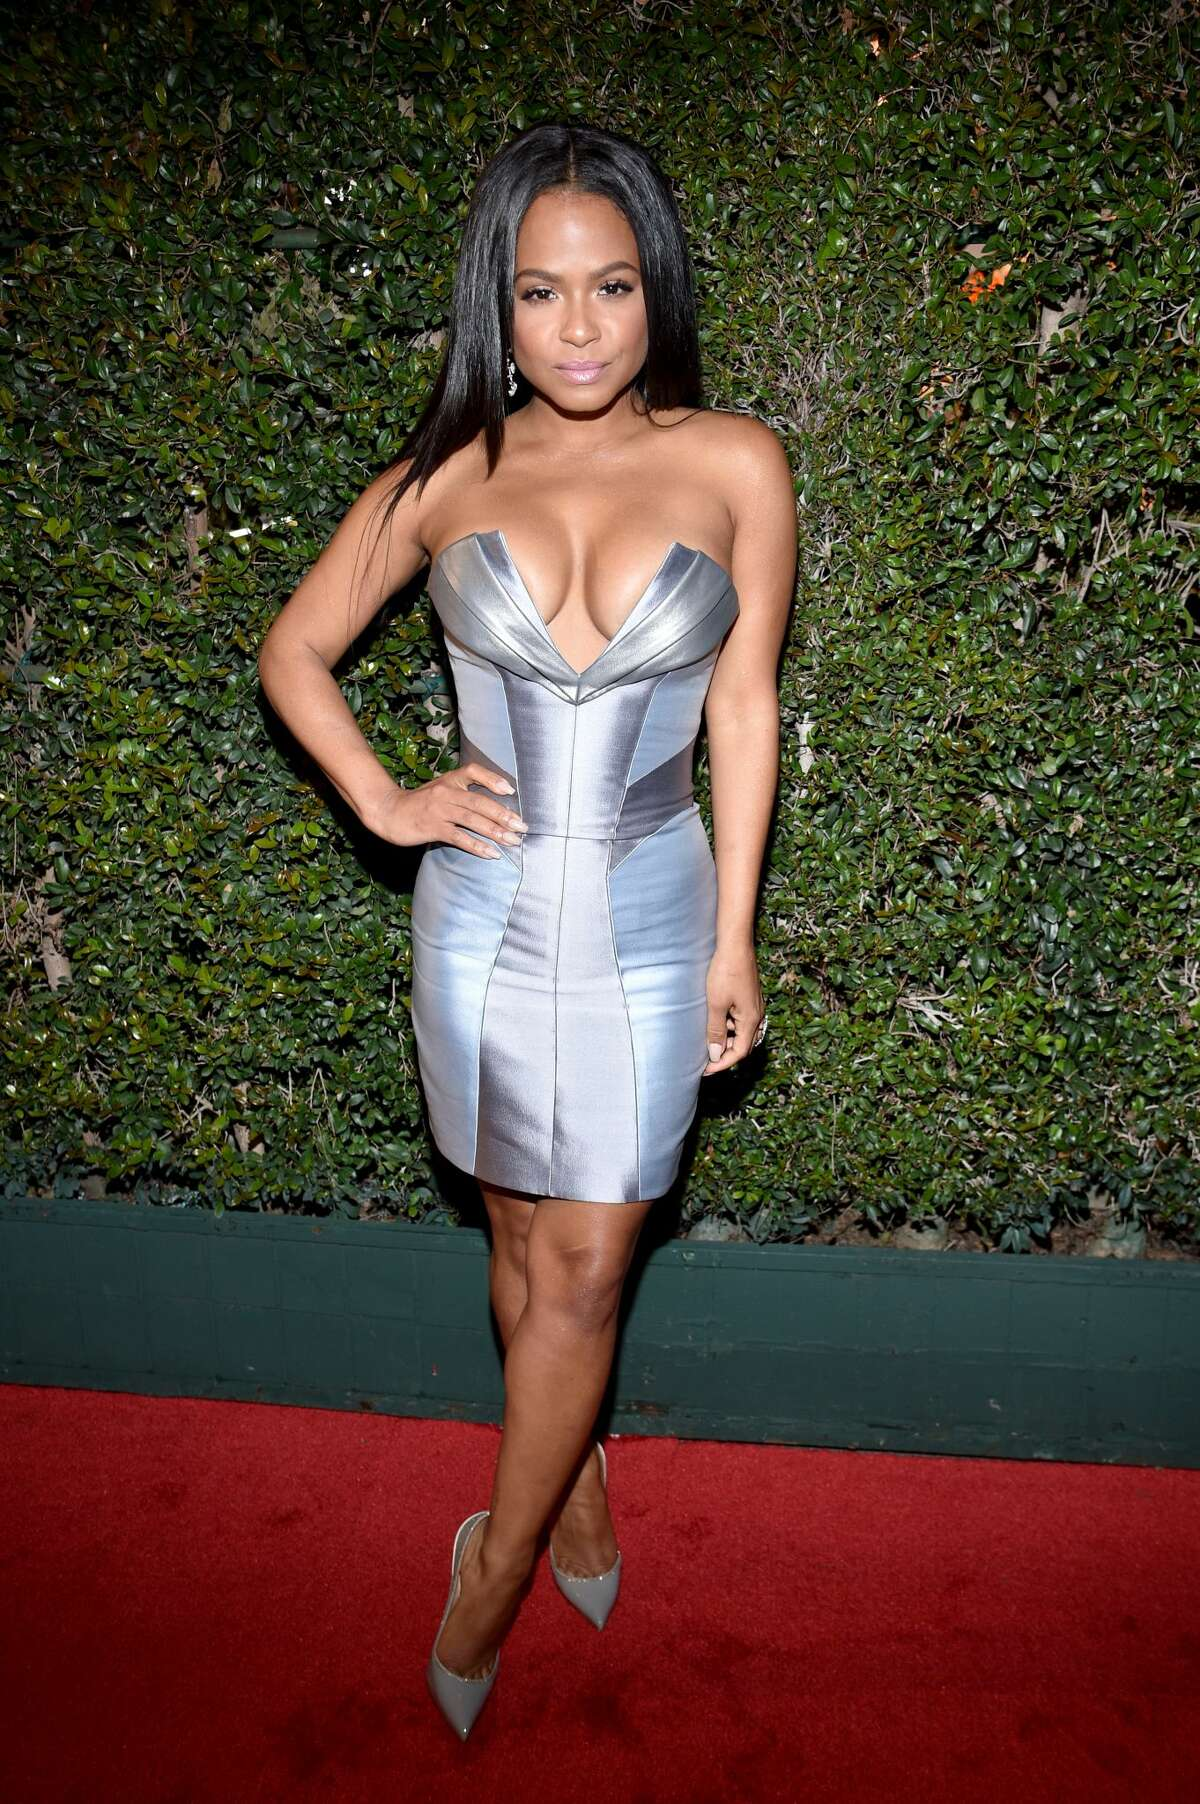 Christina Milian attends the 2017 iHeartRadio Music Awards on March 5, 2017 in Inglewood, California.